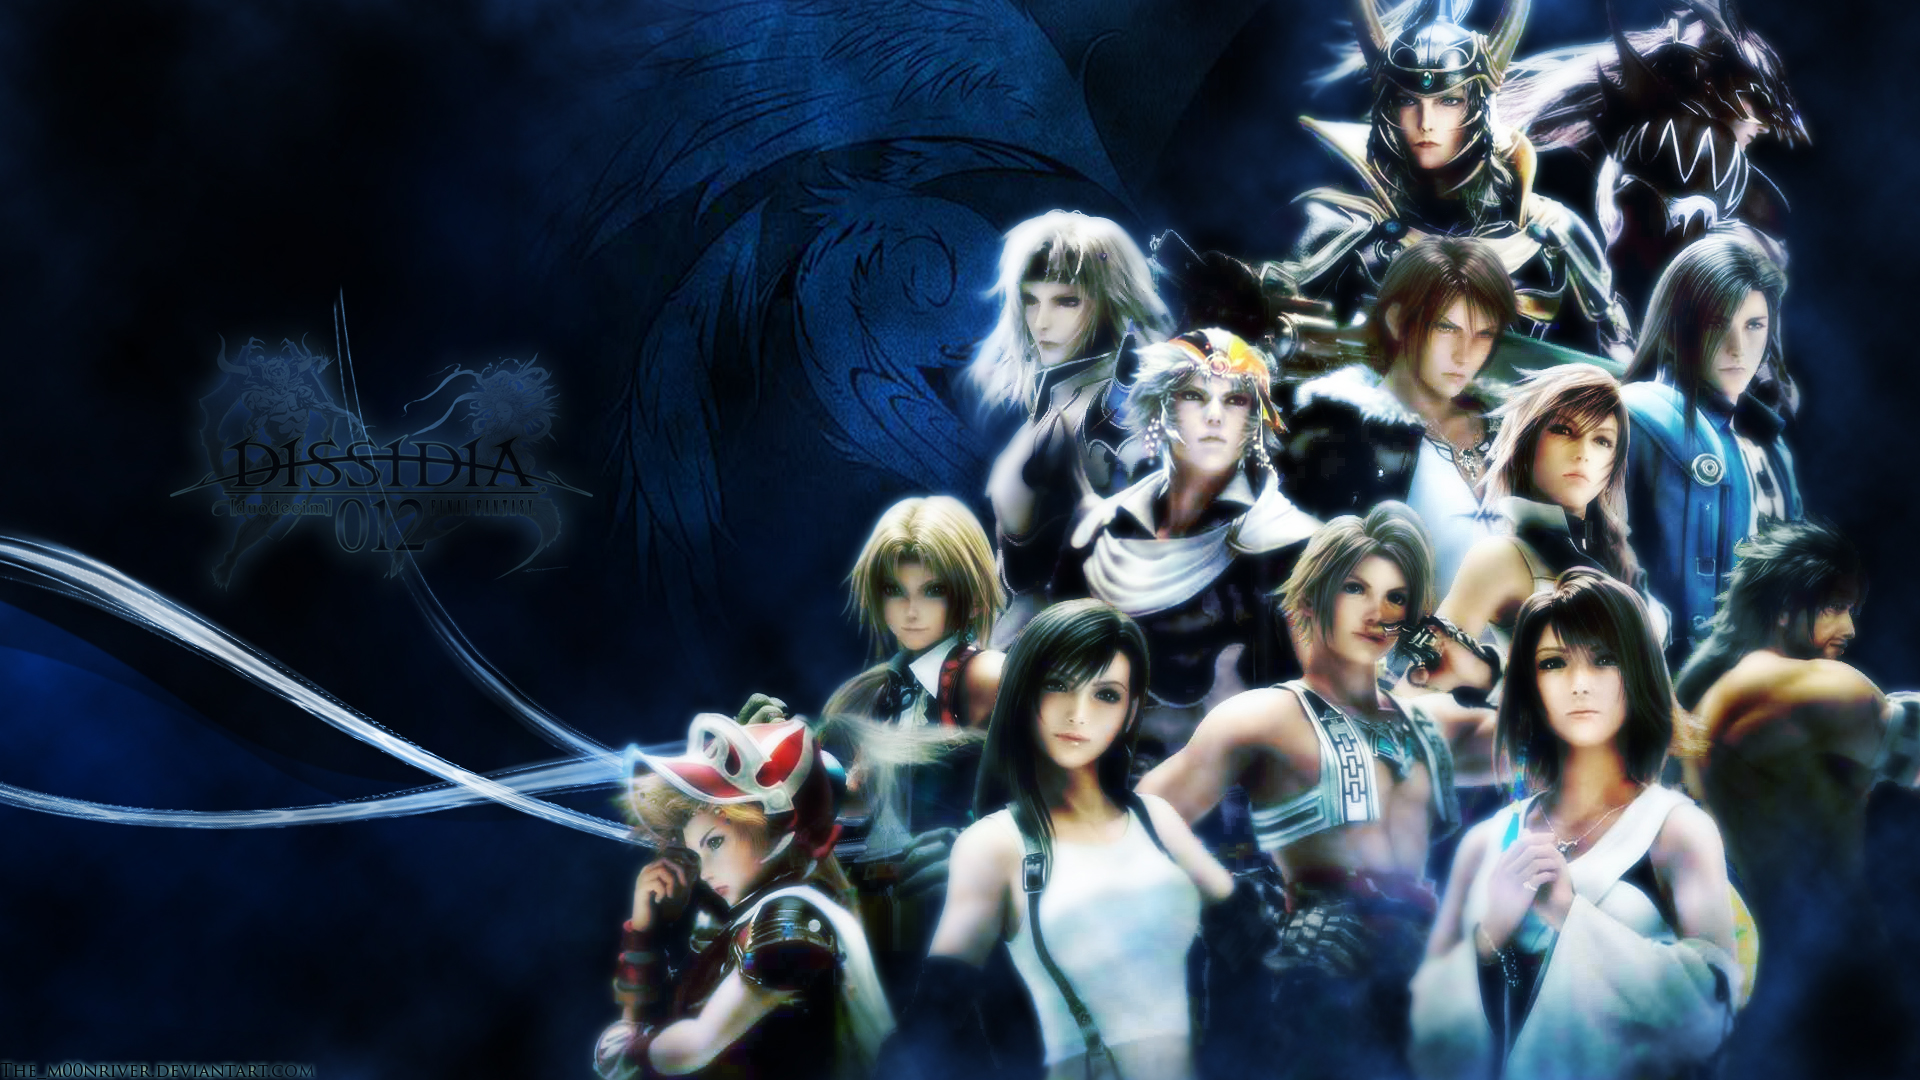 Final Fantasy Wallpaper 1920x1080 Final Fantasy Squall Leonhart 1920x1080